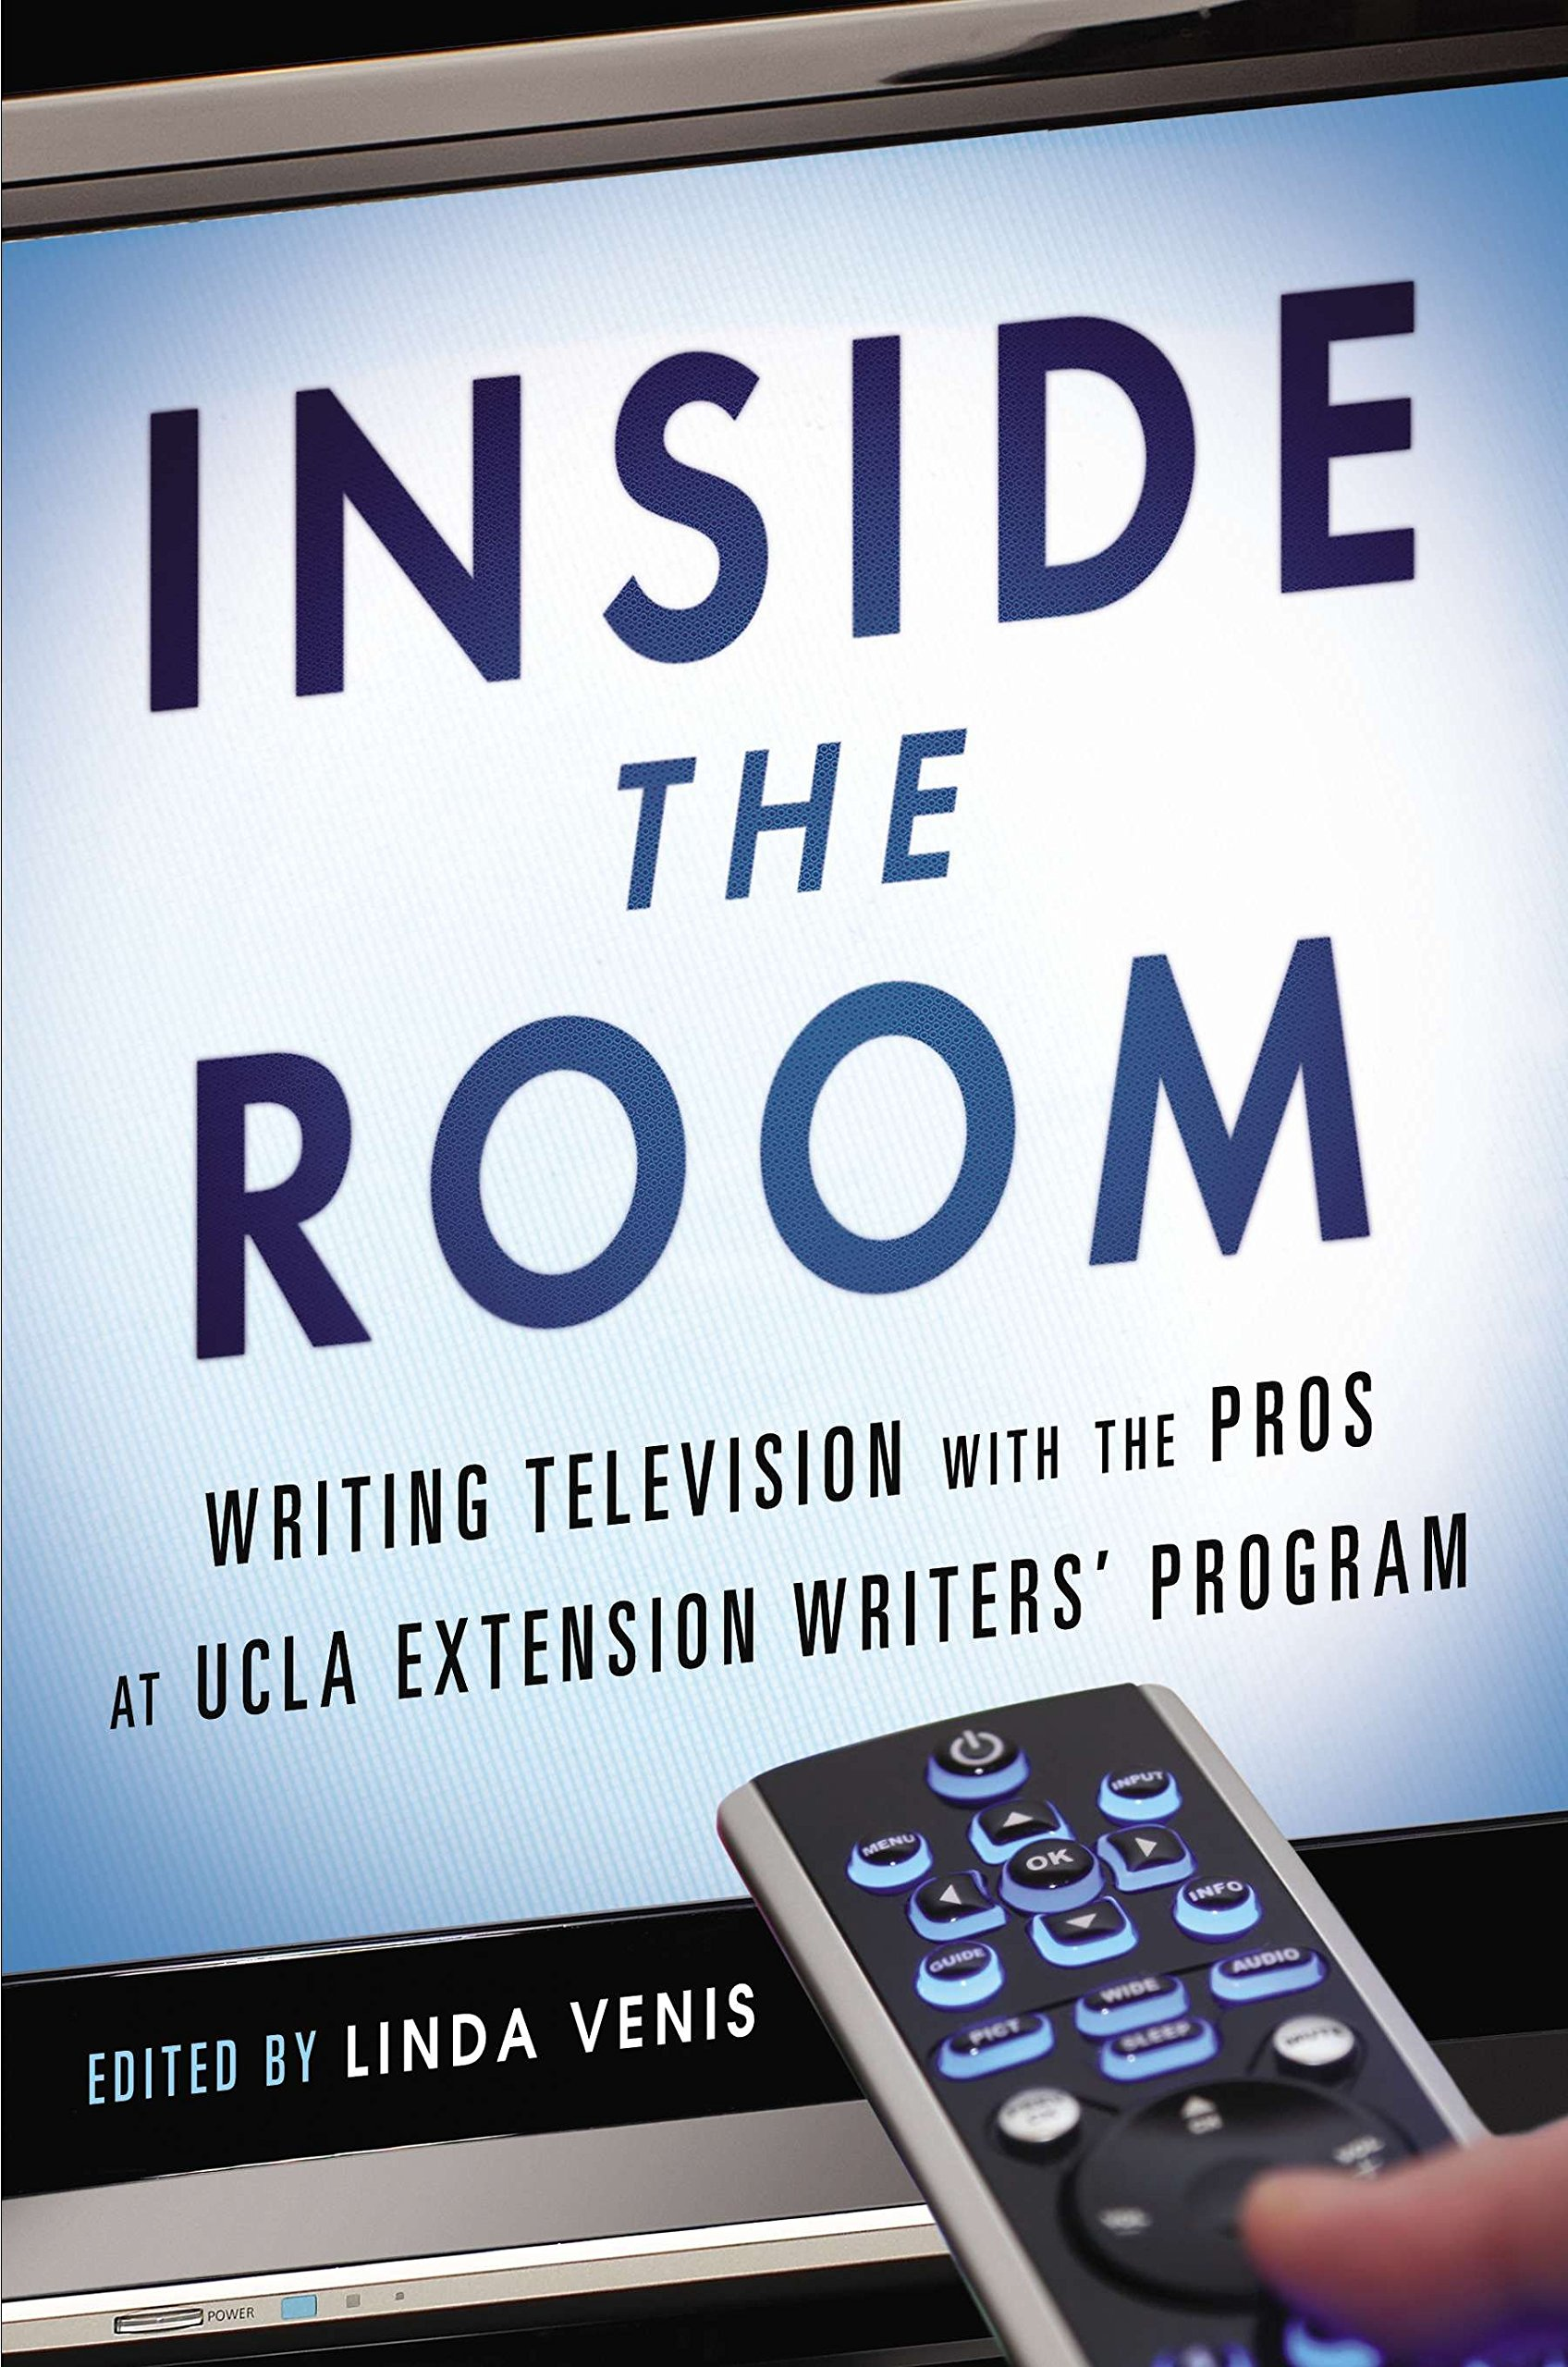 Inside The Room Writing Television With The Pros At Ucla Extension